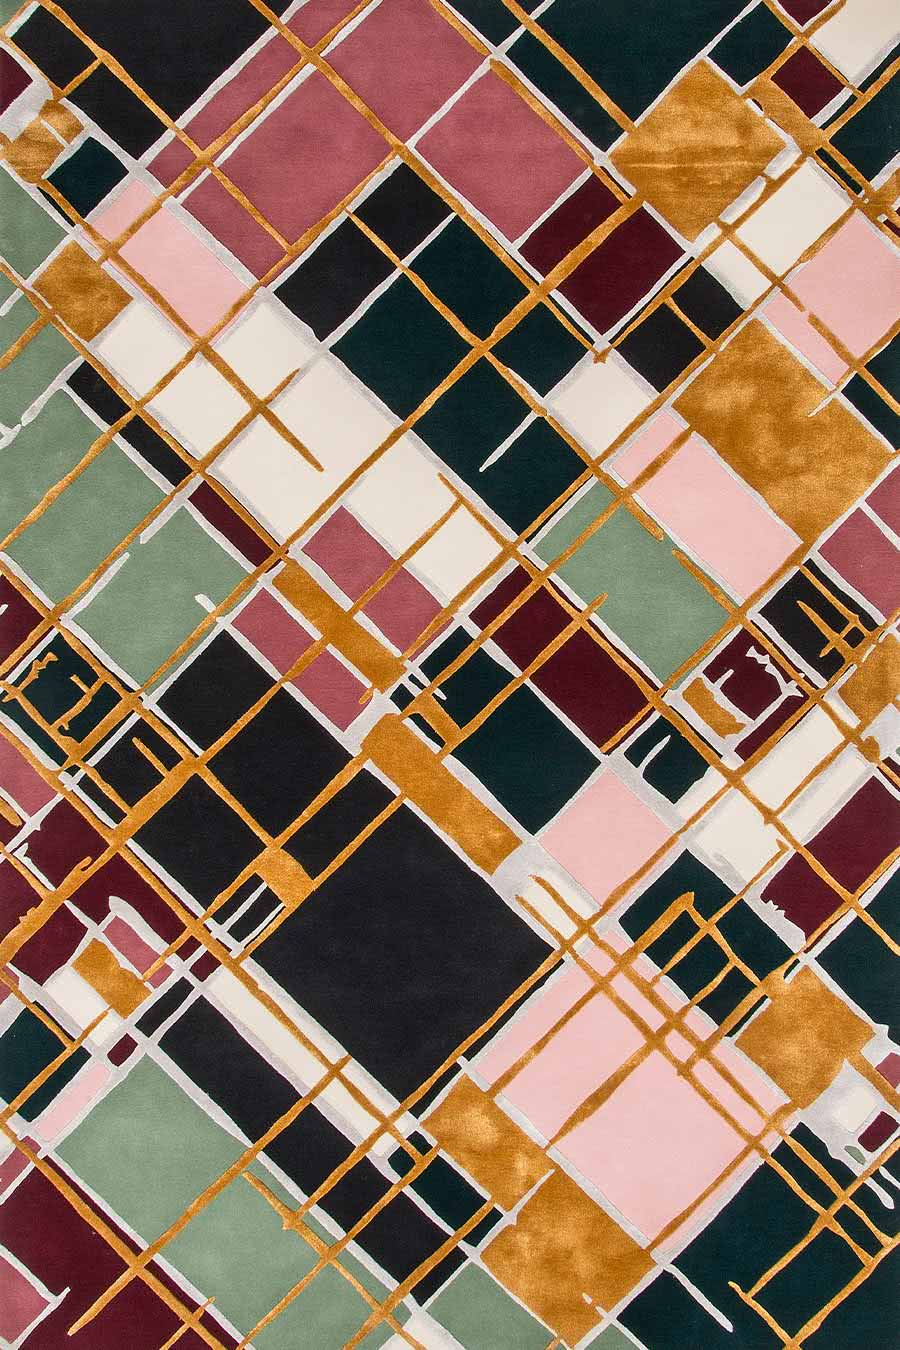 Modern Austin multi coloured rug with gold and pink accents